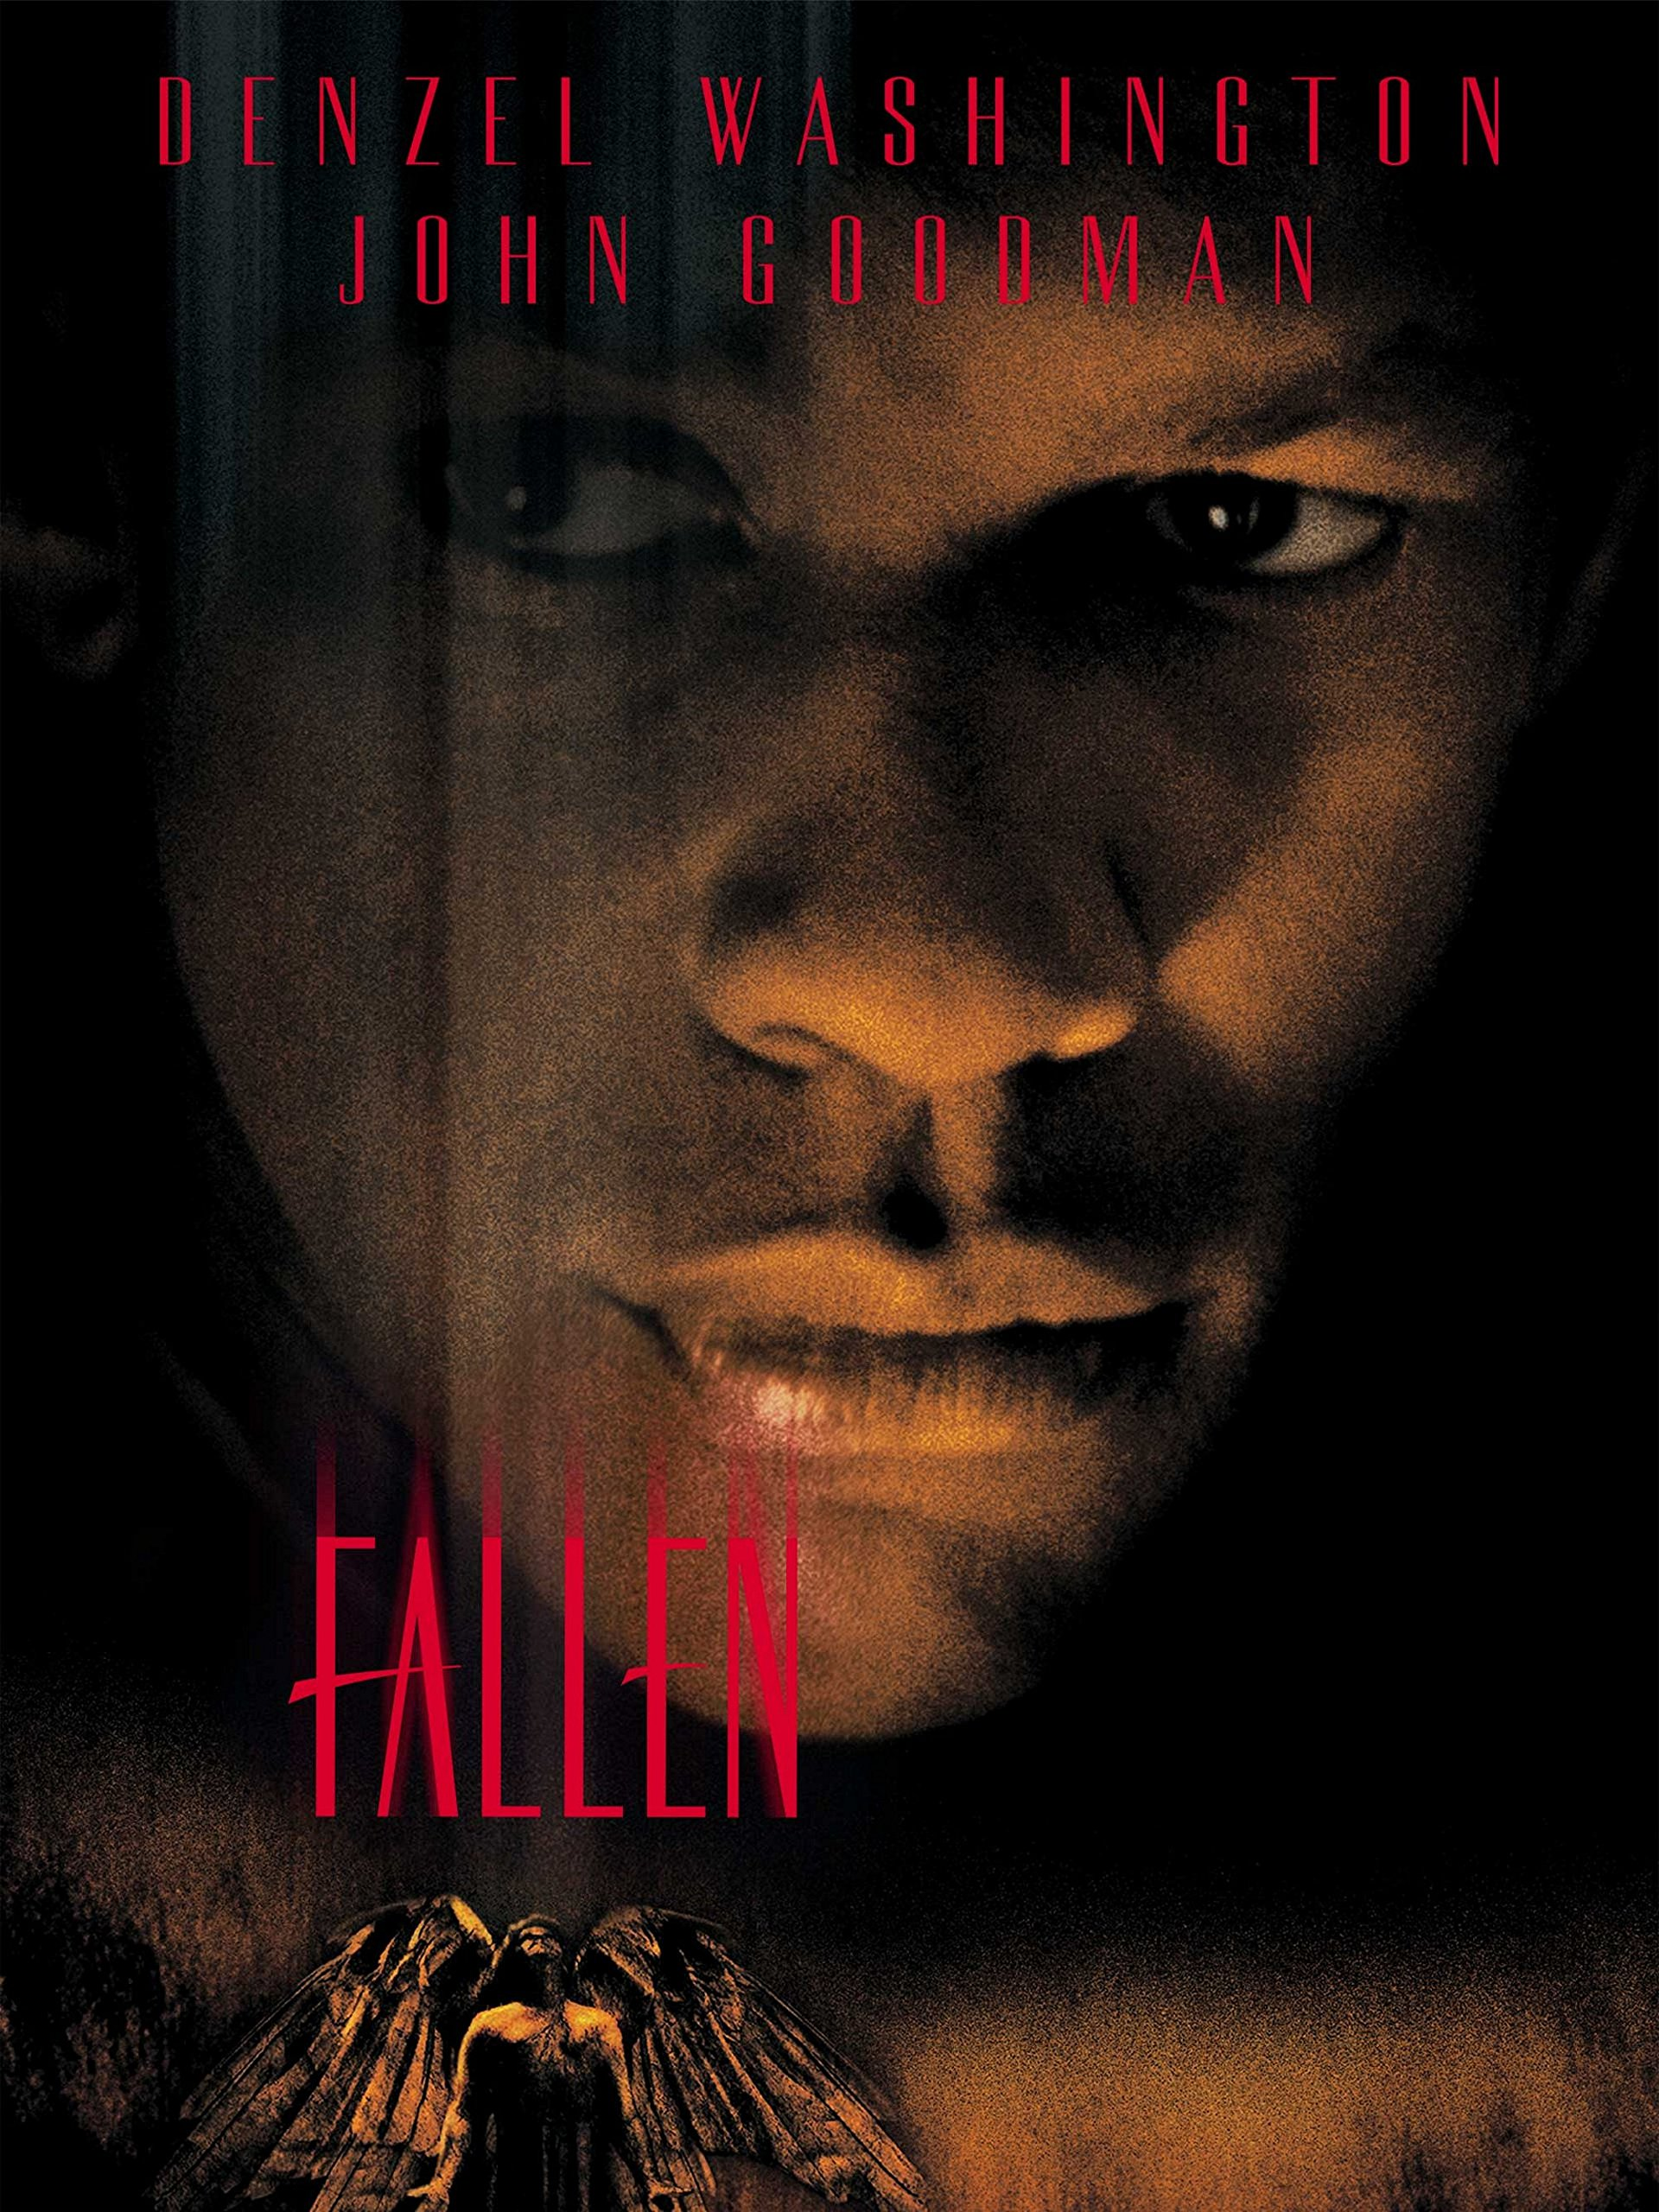 Fallen (1998) - Directed by: Gregory HoblitStarring: Denzel Washington, John Goodman, Donald SutherlandRated: RRunning Time: 2h 4mTMM Score: 3 StarsSTRENGTHS: Great Ideas, Good AtmosphereWEAKNESSES: Weak Direction/Writing